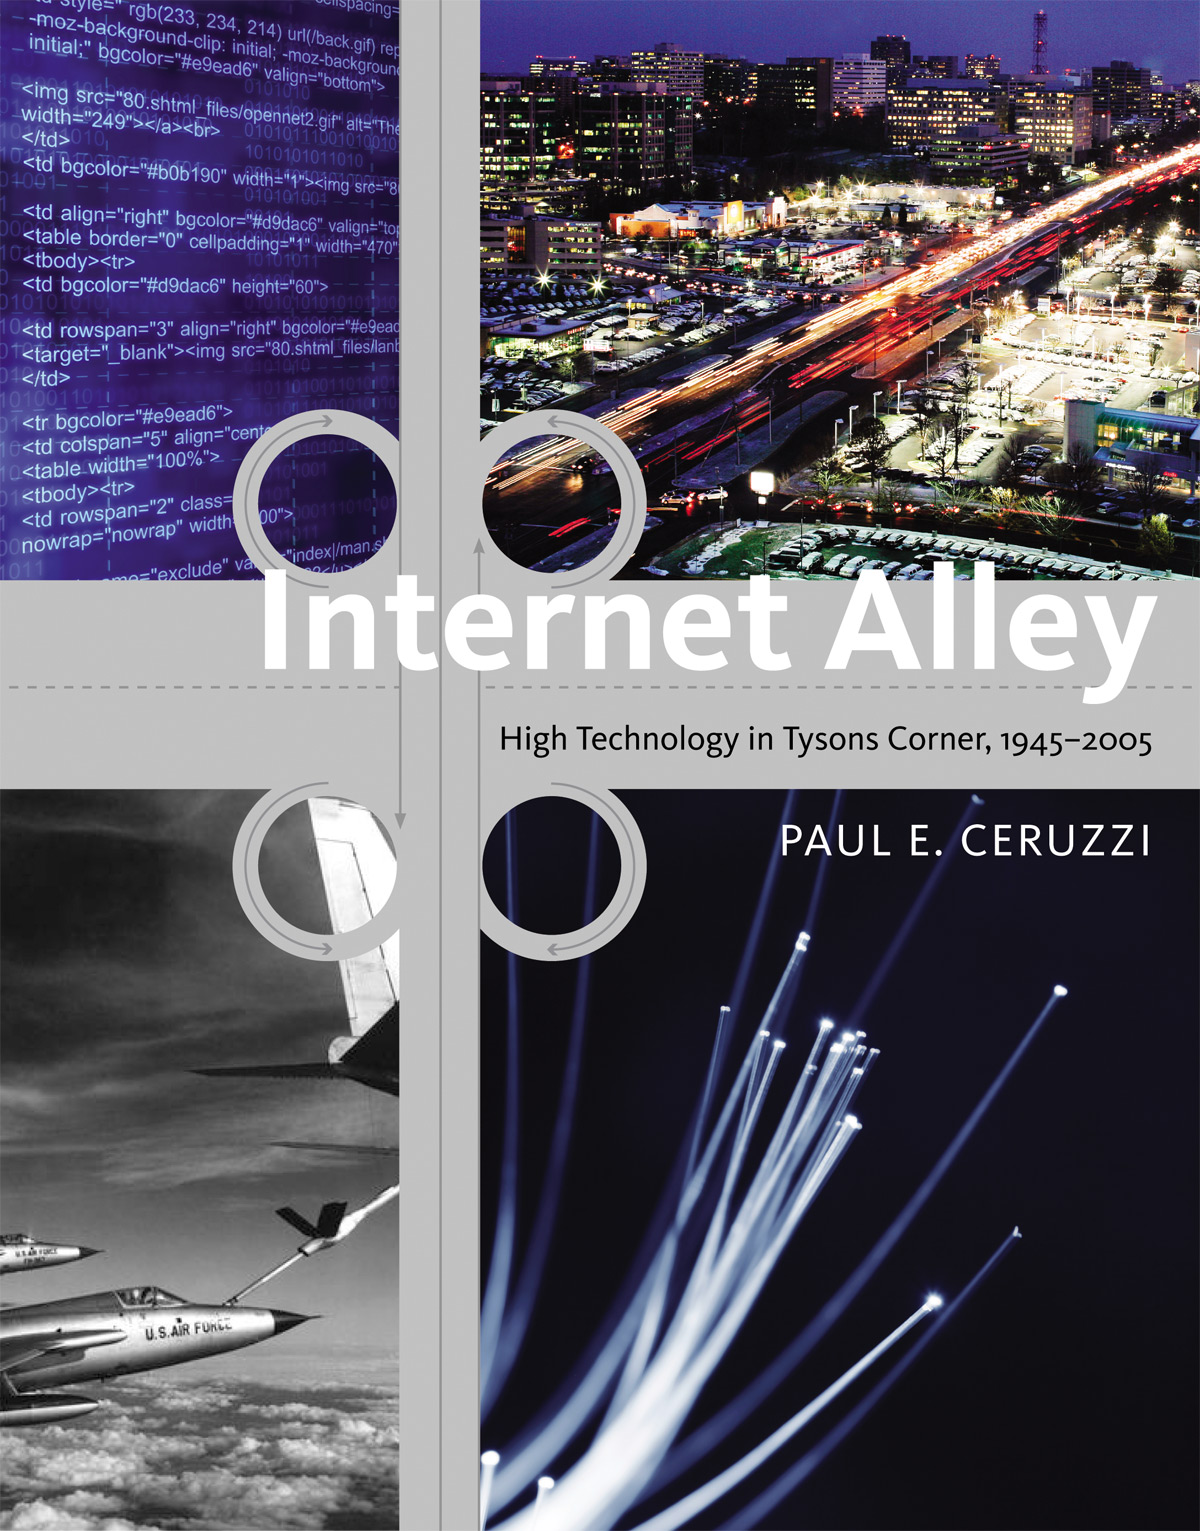 Image of book cover - Internet Alley